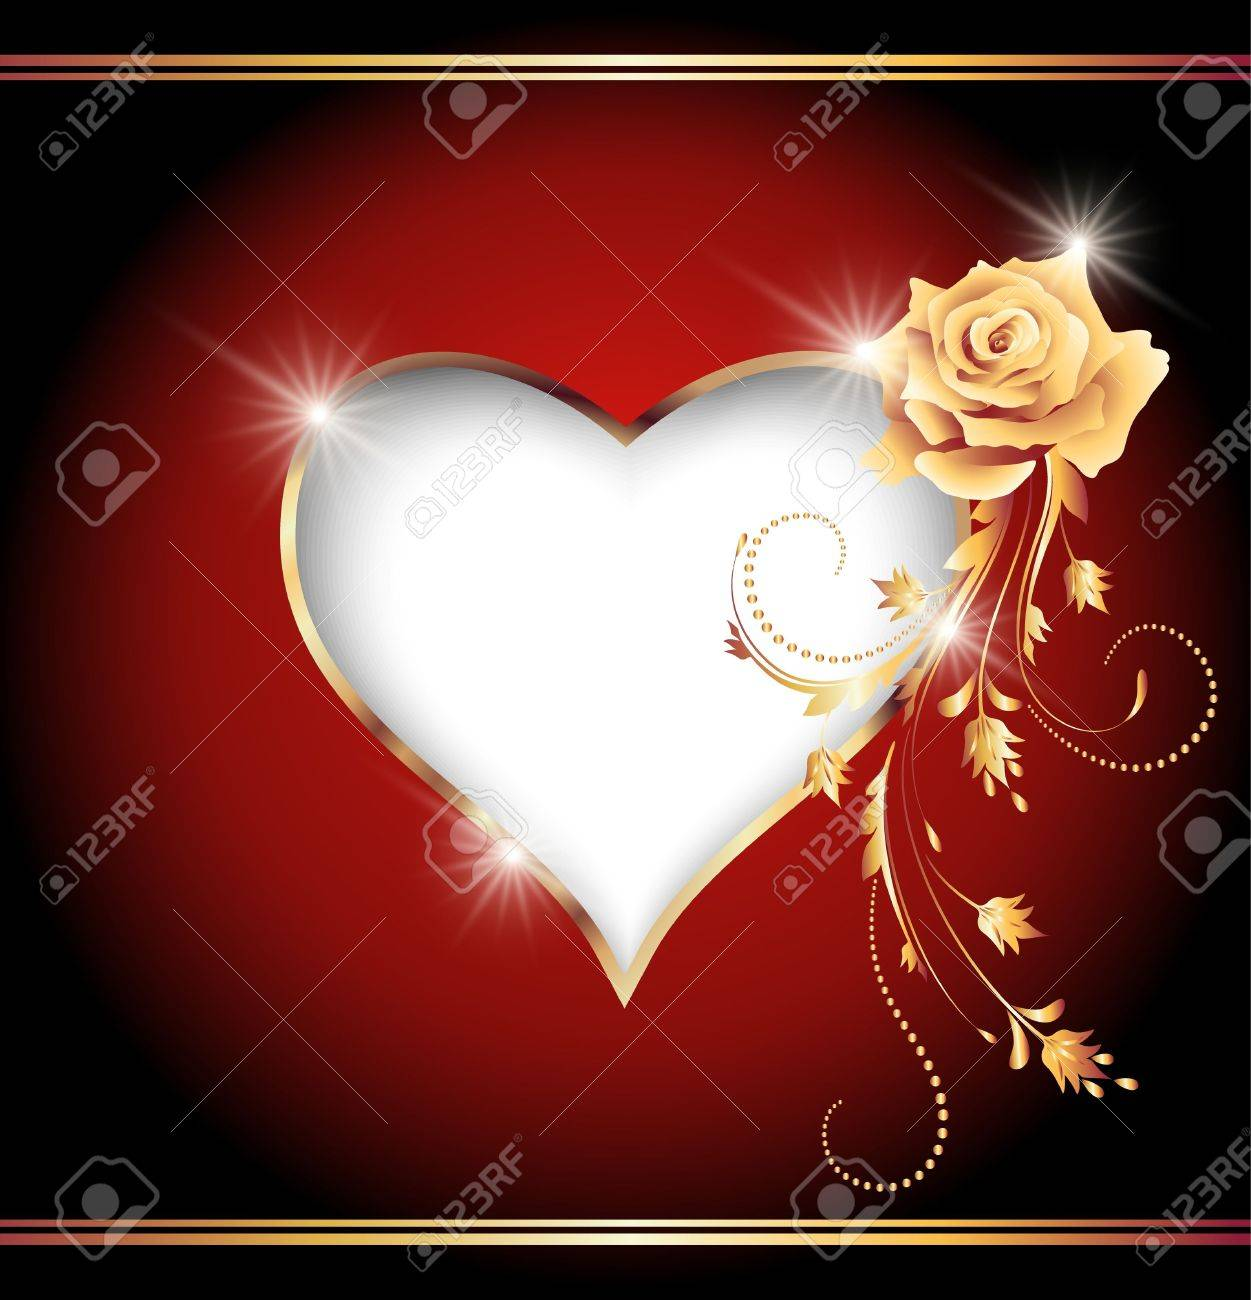 Golden Rose Heart Heart And Golden Rose